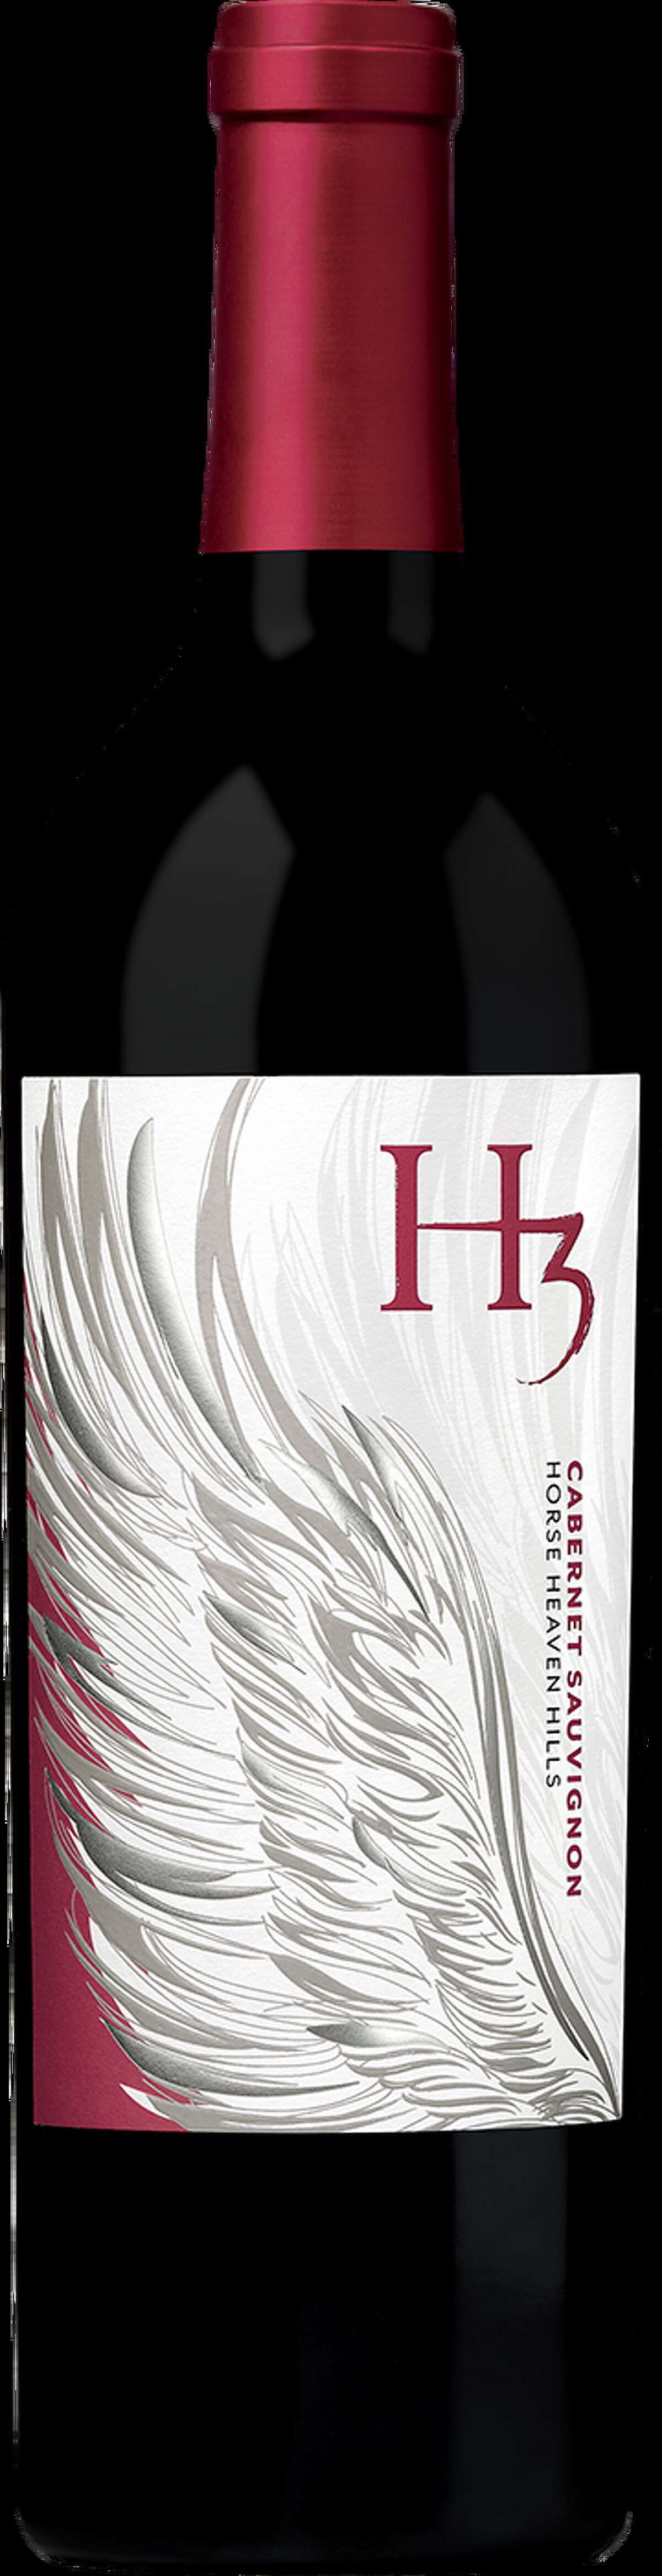 H3 2017 Cabernet Sauvignon: Like the H3 Cabernet Sauvignon, fire signs are robust with big personalities. Their fiery passions are mirrored by the peppery spice of H3 Cabernet Sauvignon (which is why it's their wine of choice). The blackcurrant undertones in this wine pop like fruity fireworks. This bold red will be by your side as fire signs start living their dreams out loud. It's a great companion as they become motivated to pursue their innermost visions into physical reality. Cheers to inspiring oneself and starting visions!